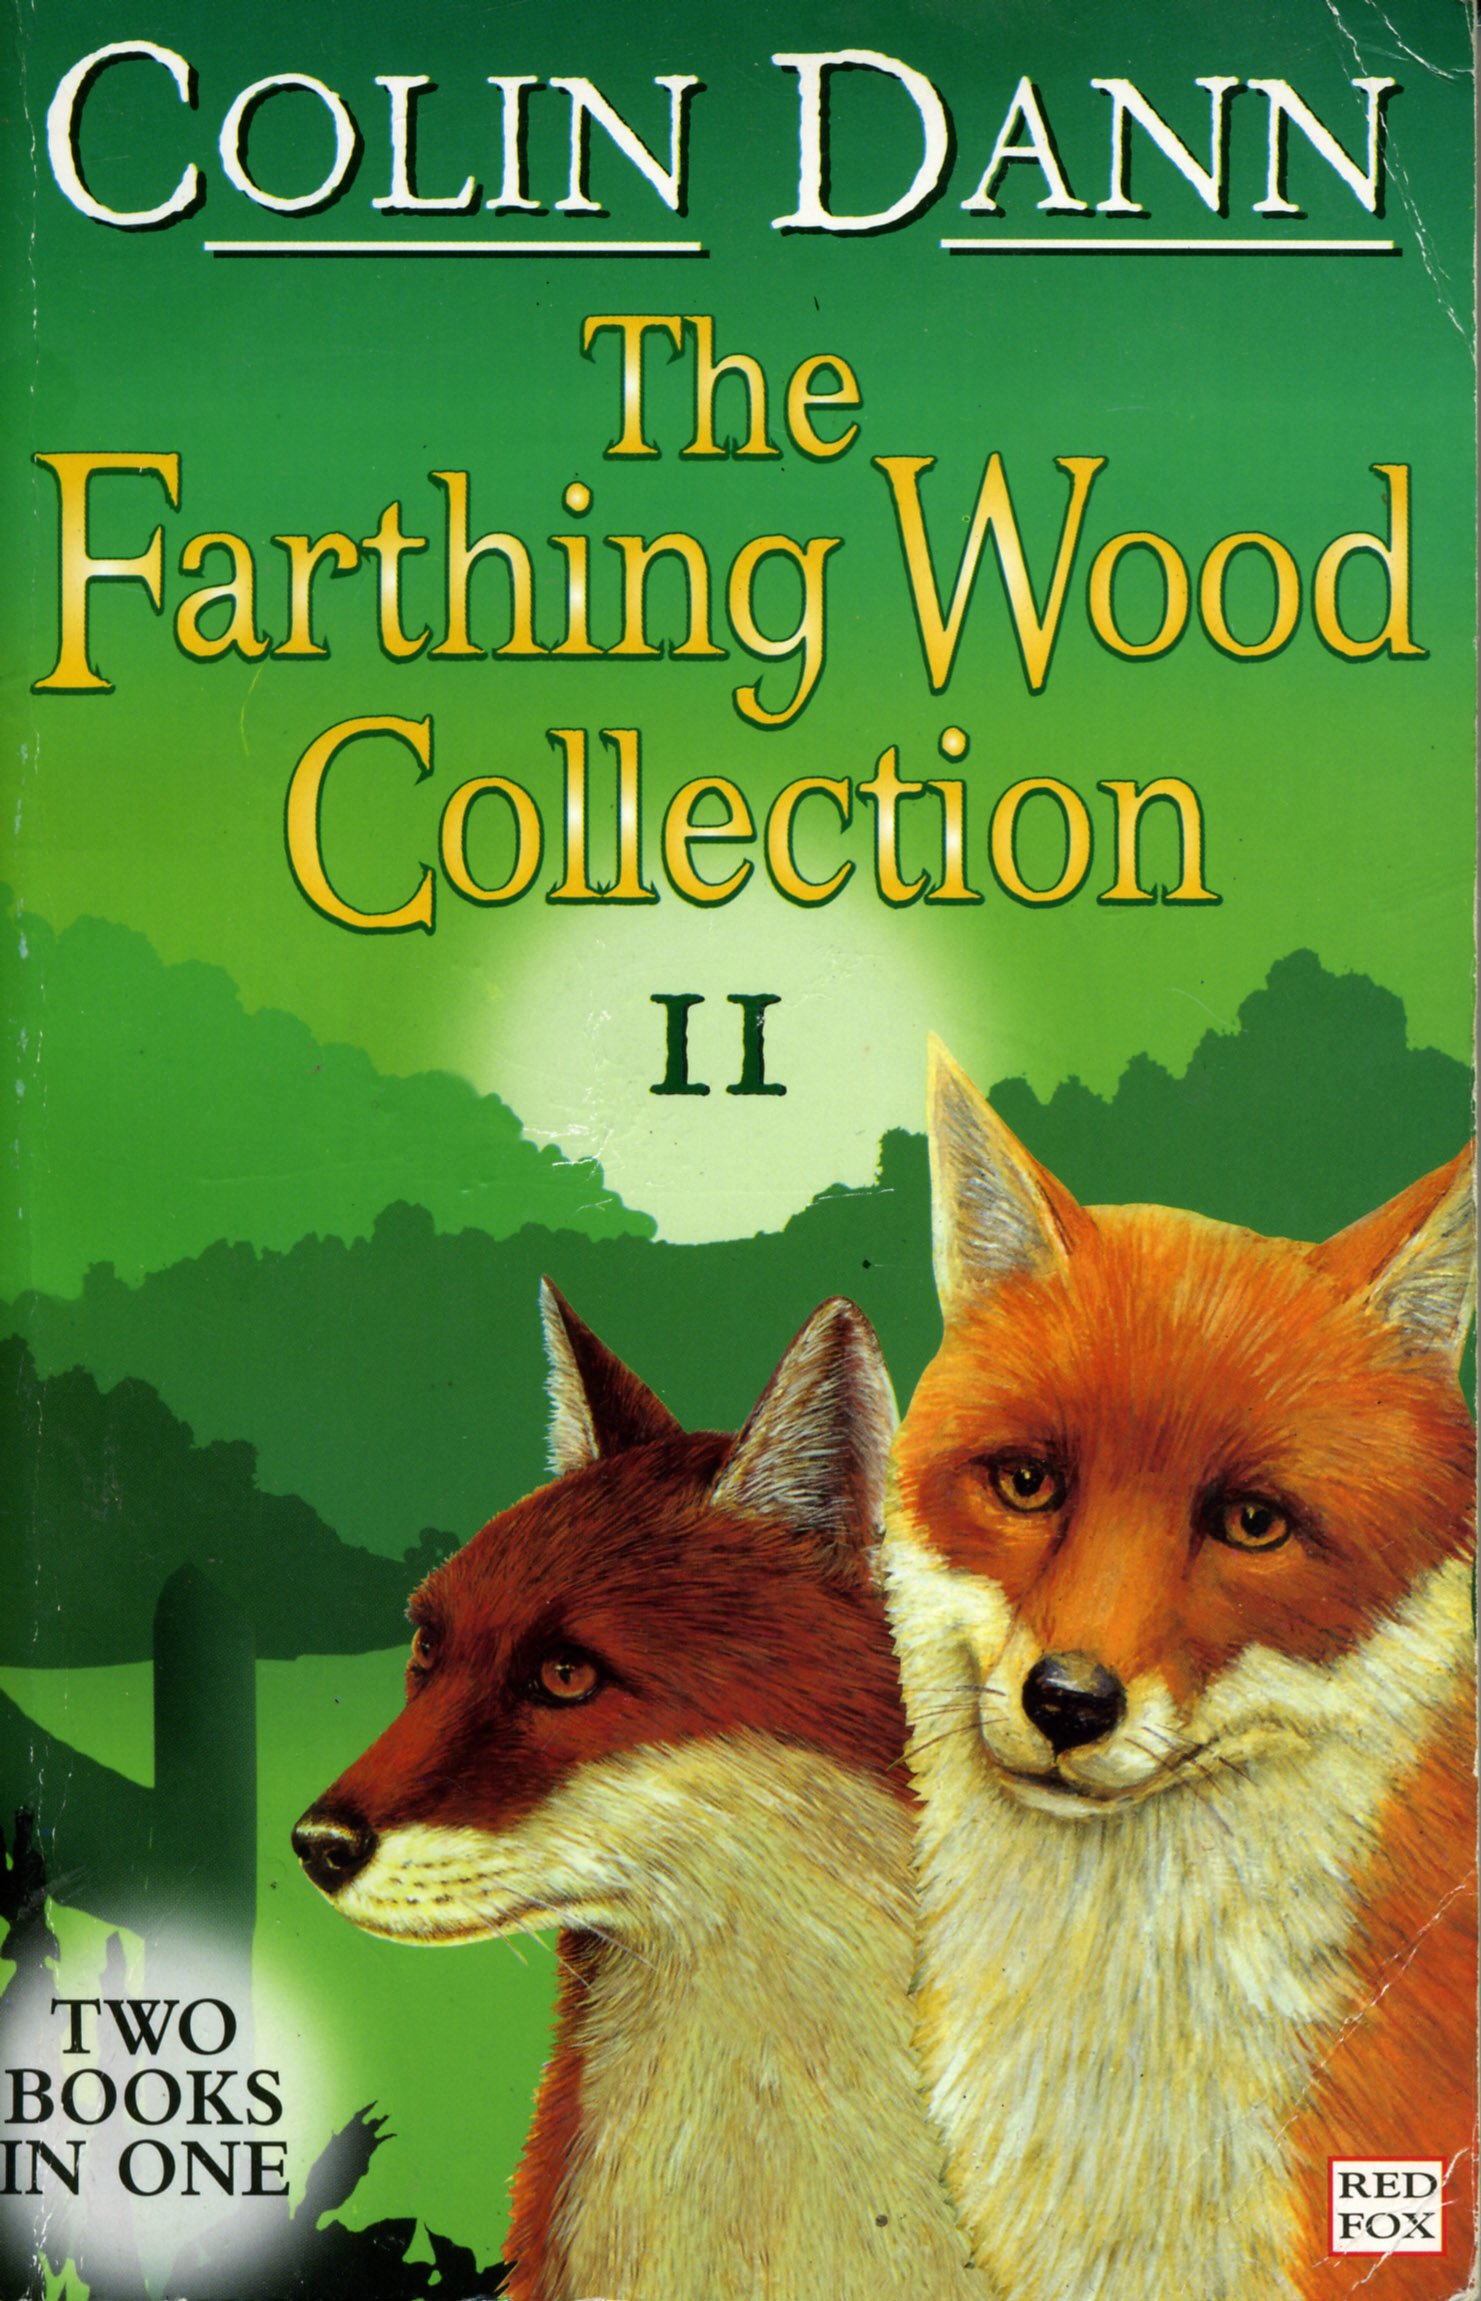 The Farthing Wood Collection 2: